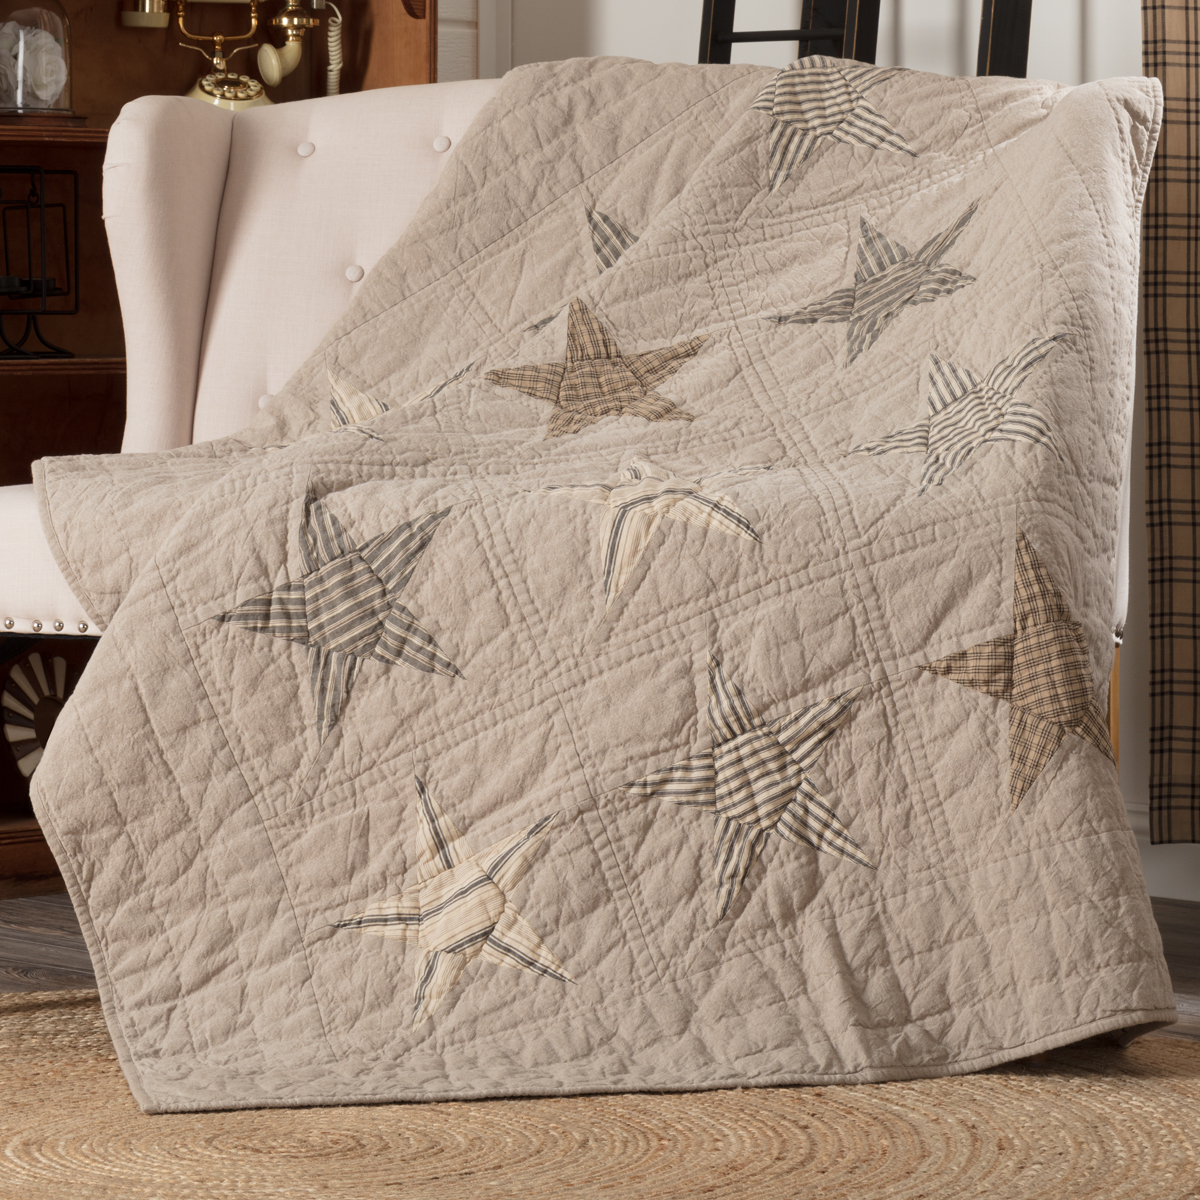 Sawyer Mill Star Charcoal Quilted Throw 60x50 Allysons Place